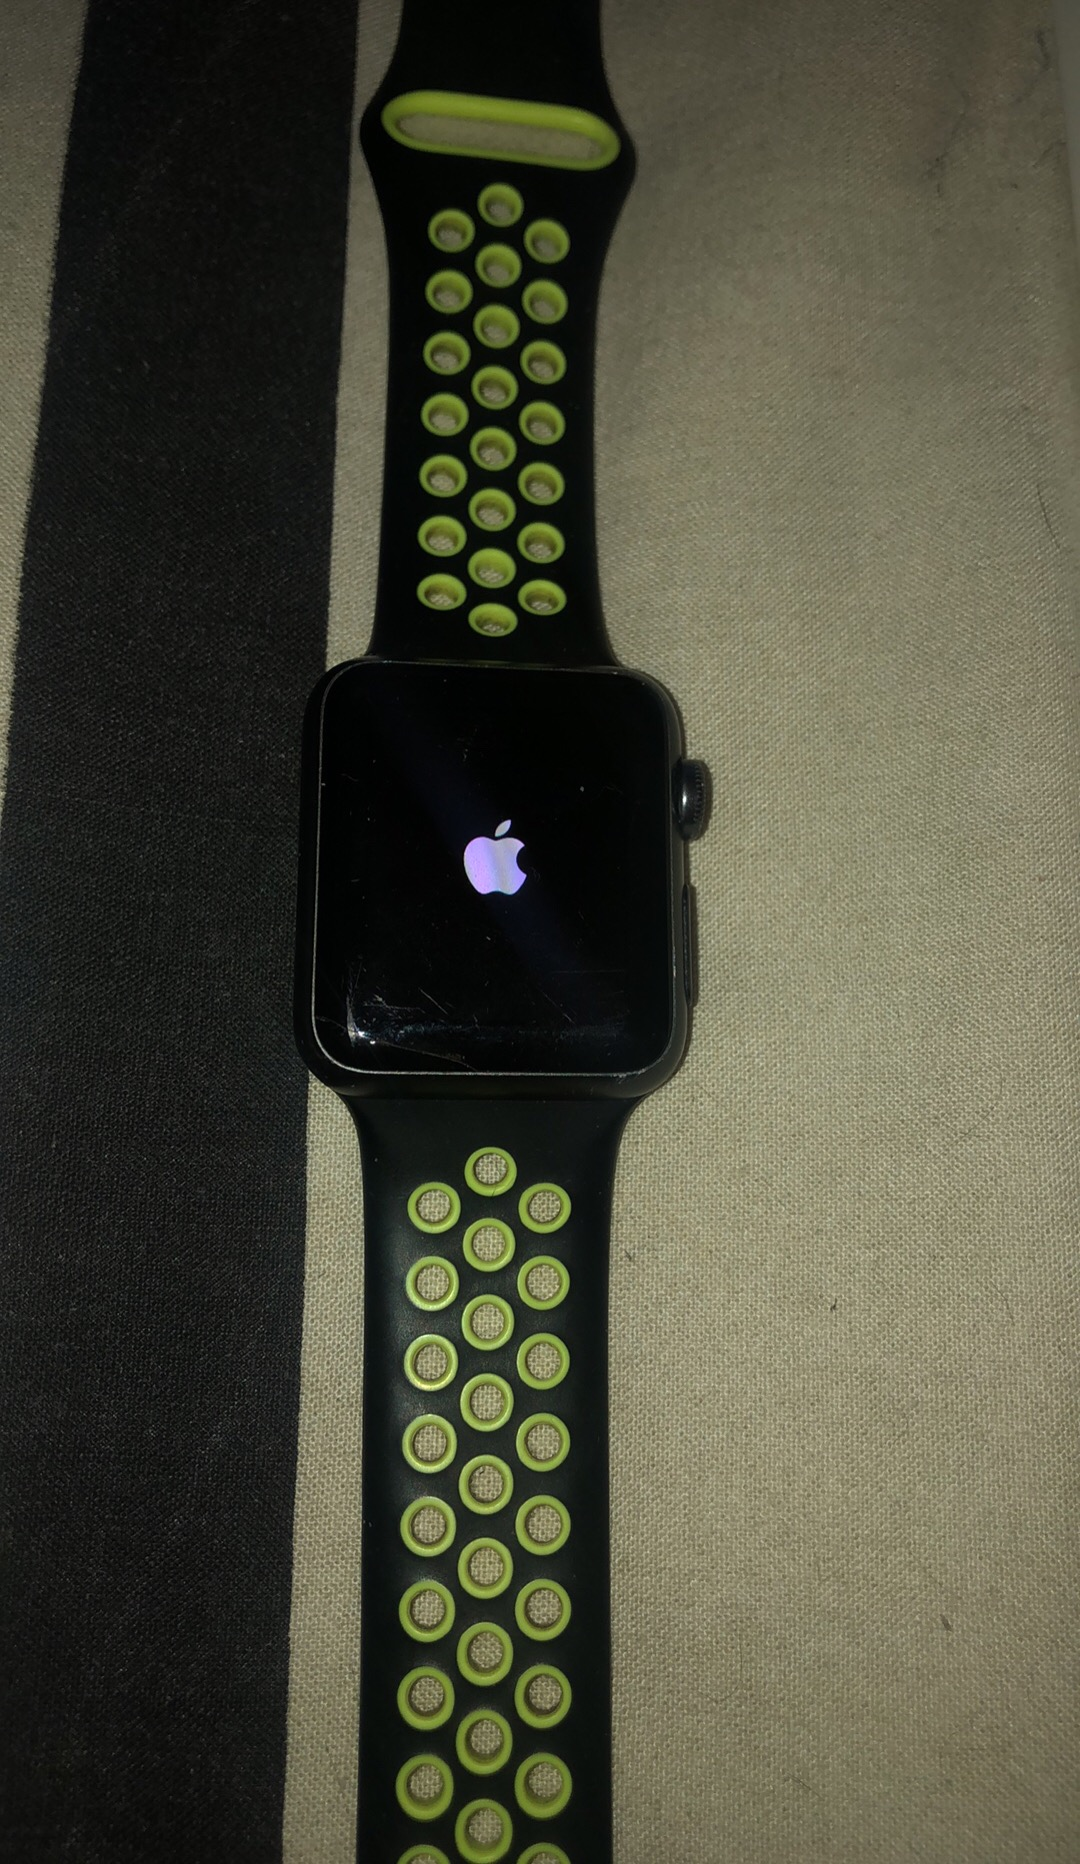 I phone 6s and series 1 and 2 Apple Watch